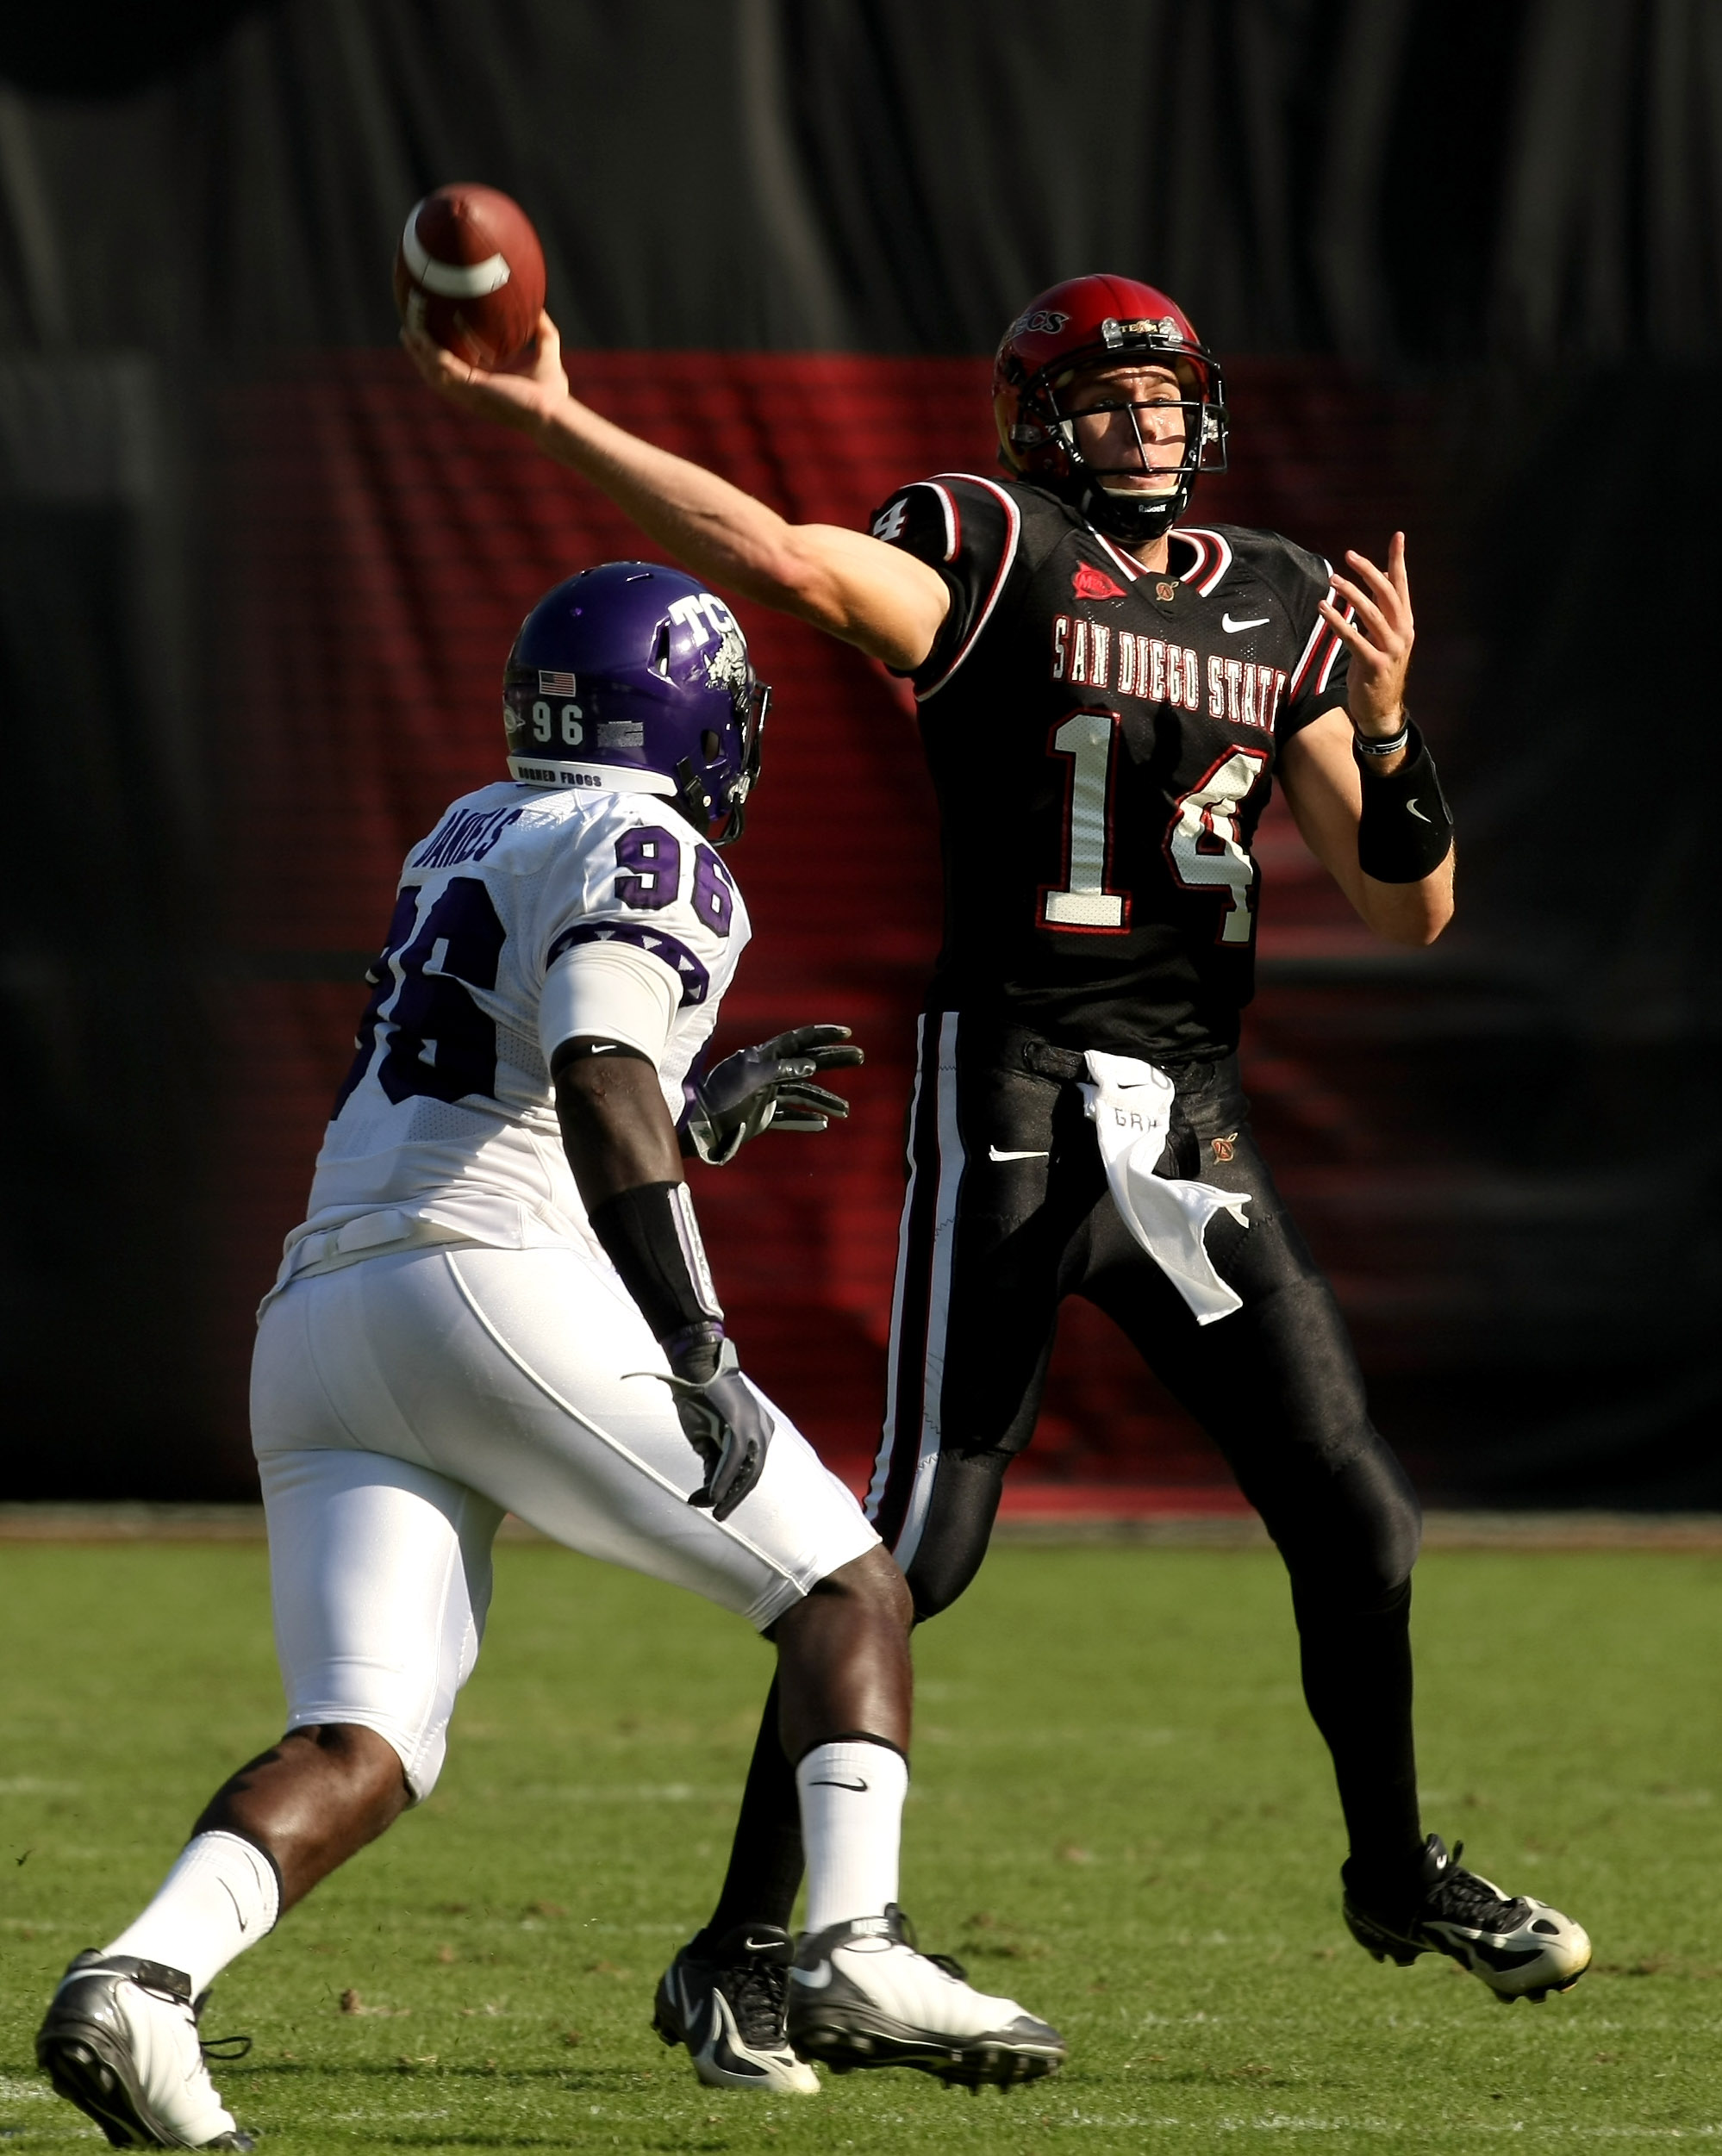 SAN DIEGO - NOVEMBER 7:  Quarterback Ryan Lindley #14 of the San Diego State Aztecs throws a pass over defensive end Wayne Daniels #96 of the Texas Christian University Horned Frogs on November 7, 2009 at Qualcomm Stadium in San Diego, California.    (Pho